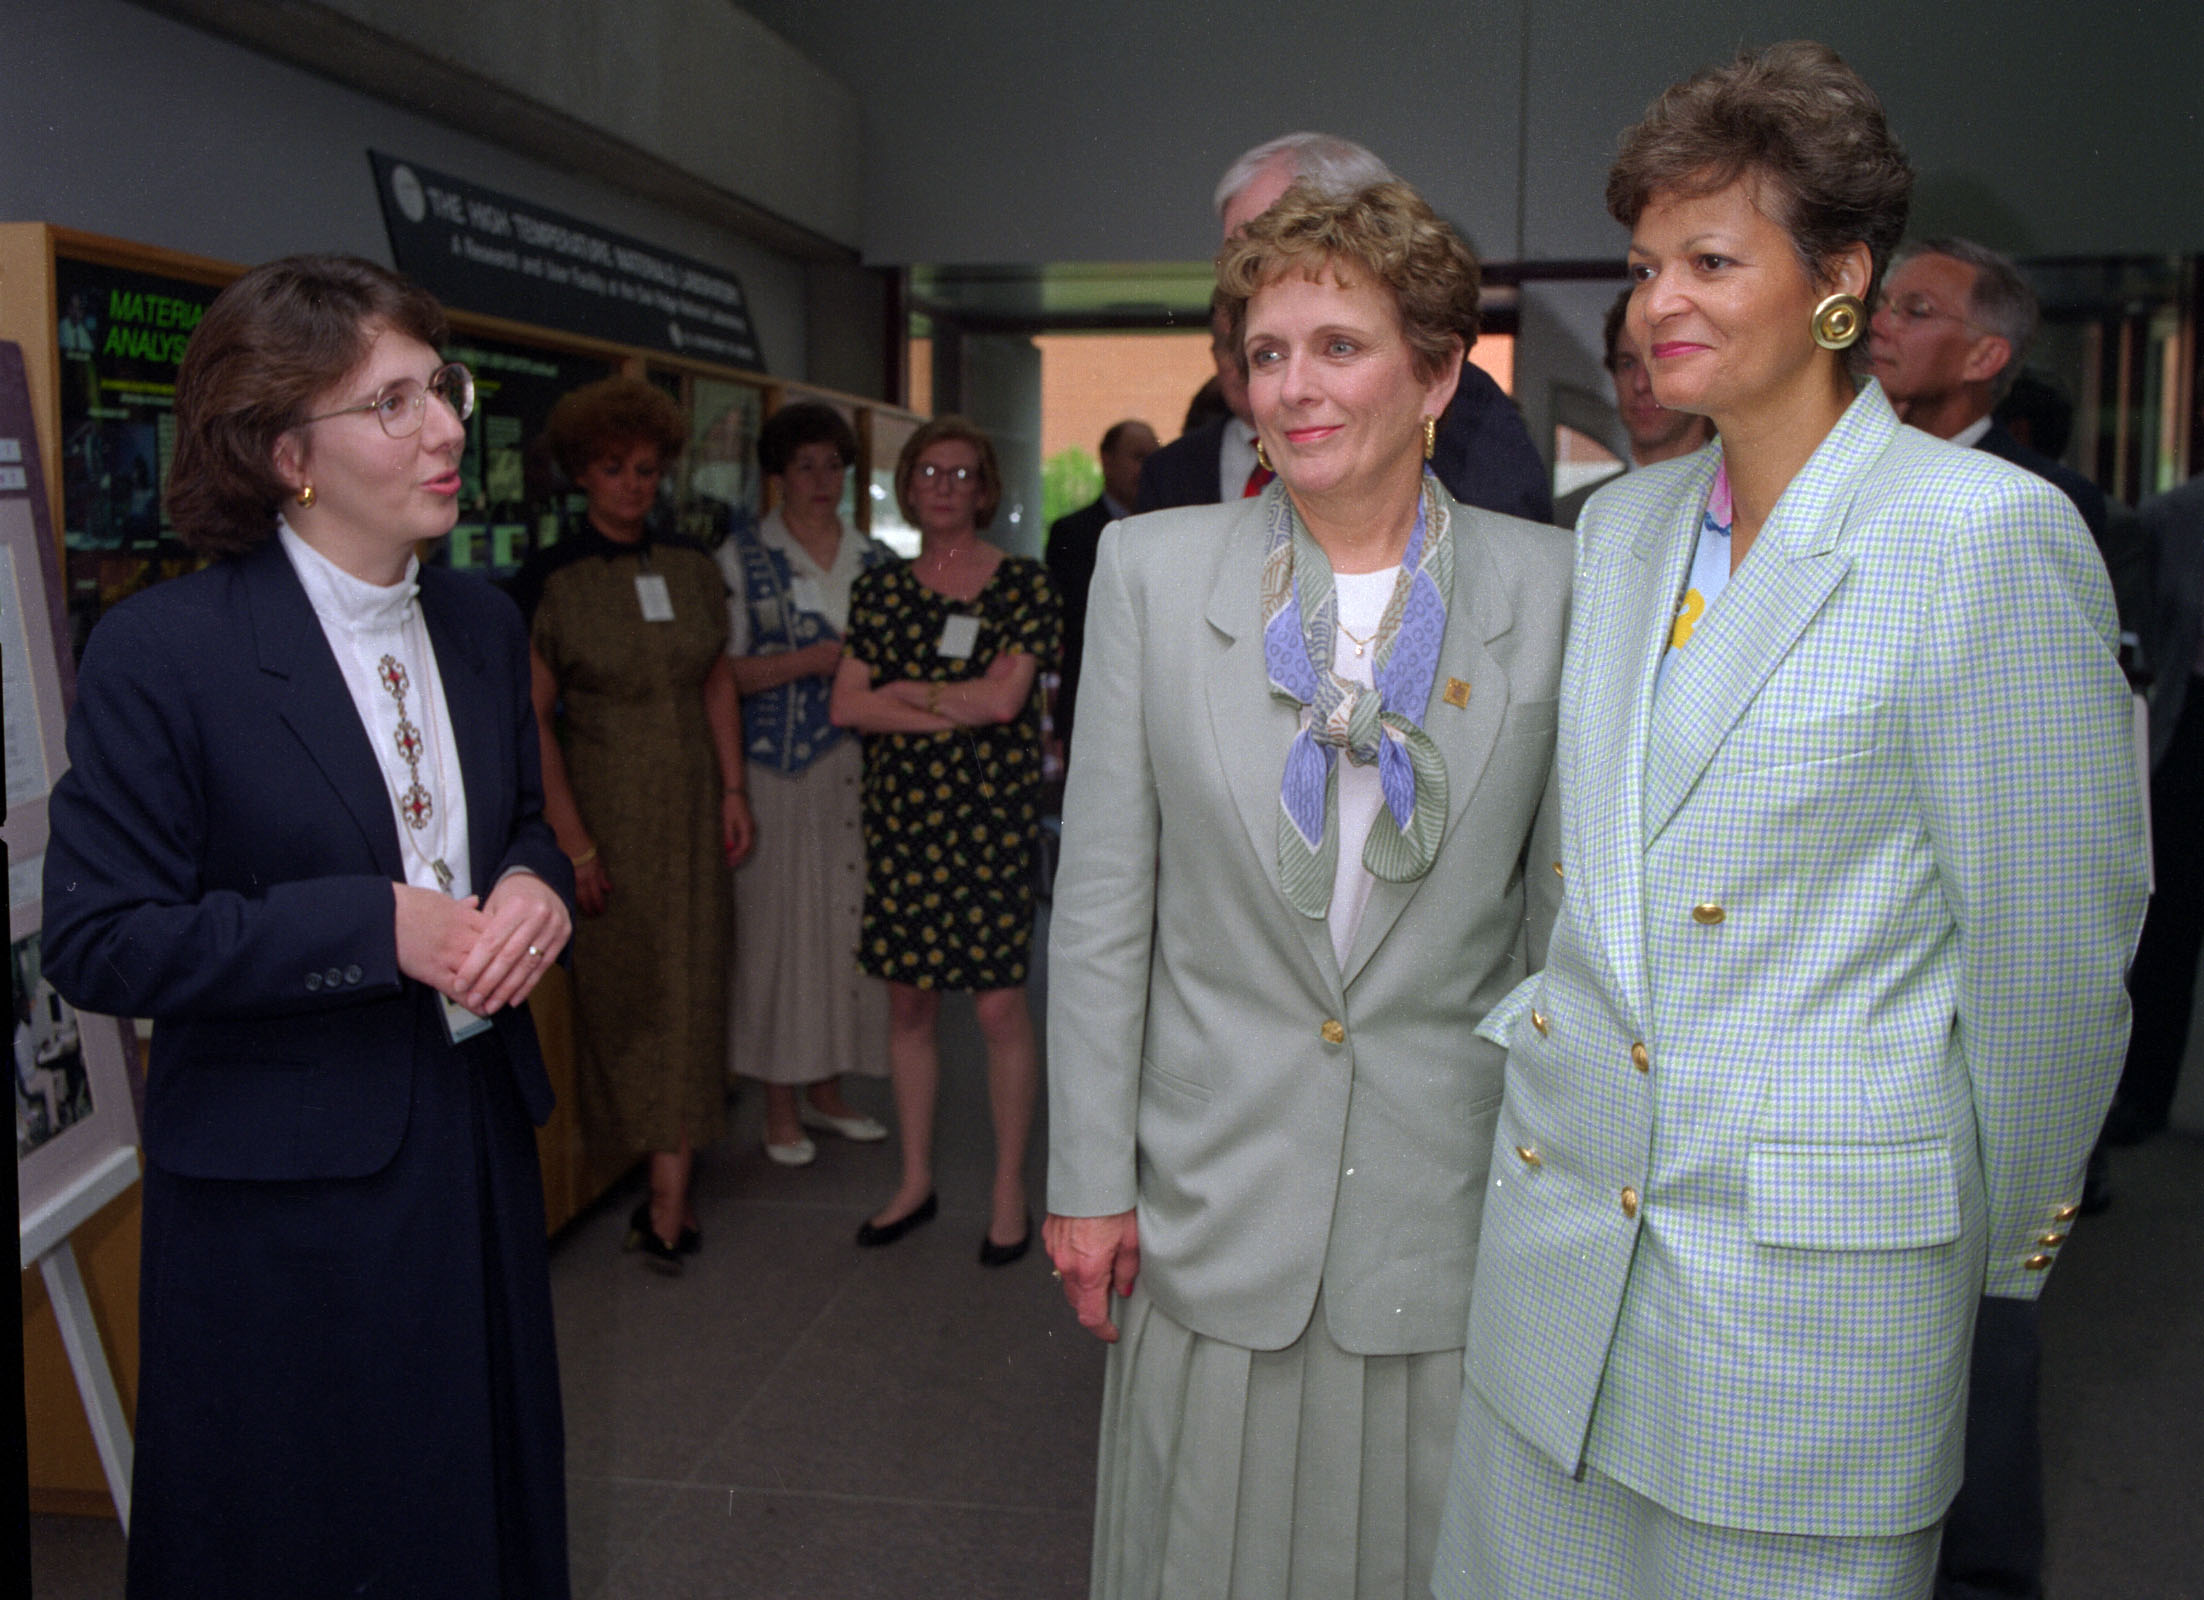 Energy Secretary Hazel O'Leary (right) visits Oak Ridge with Congresswoman Marilyn Lloyd, 1994